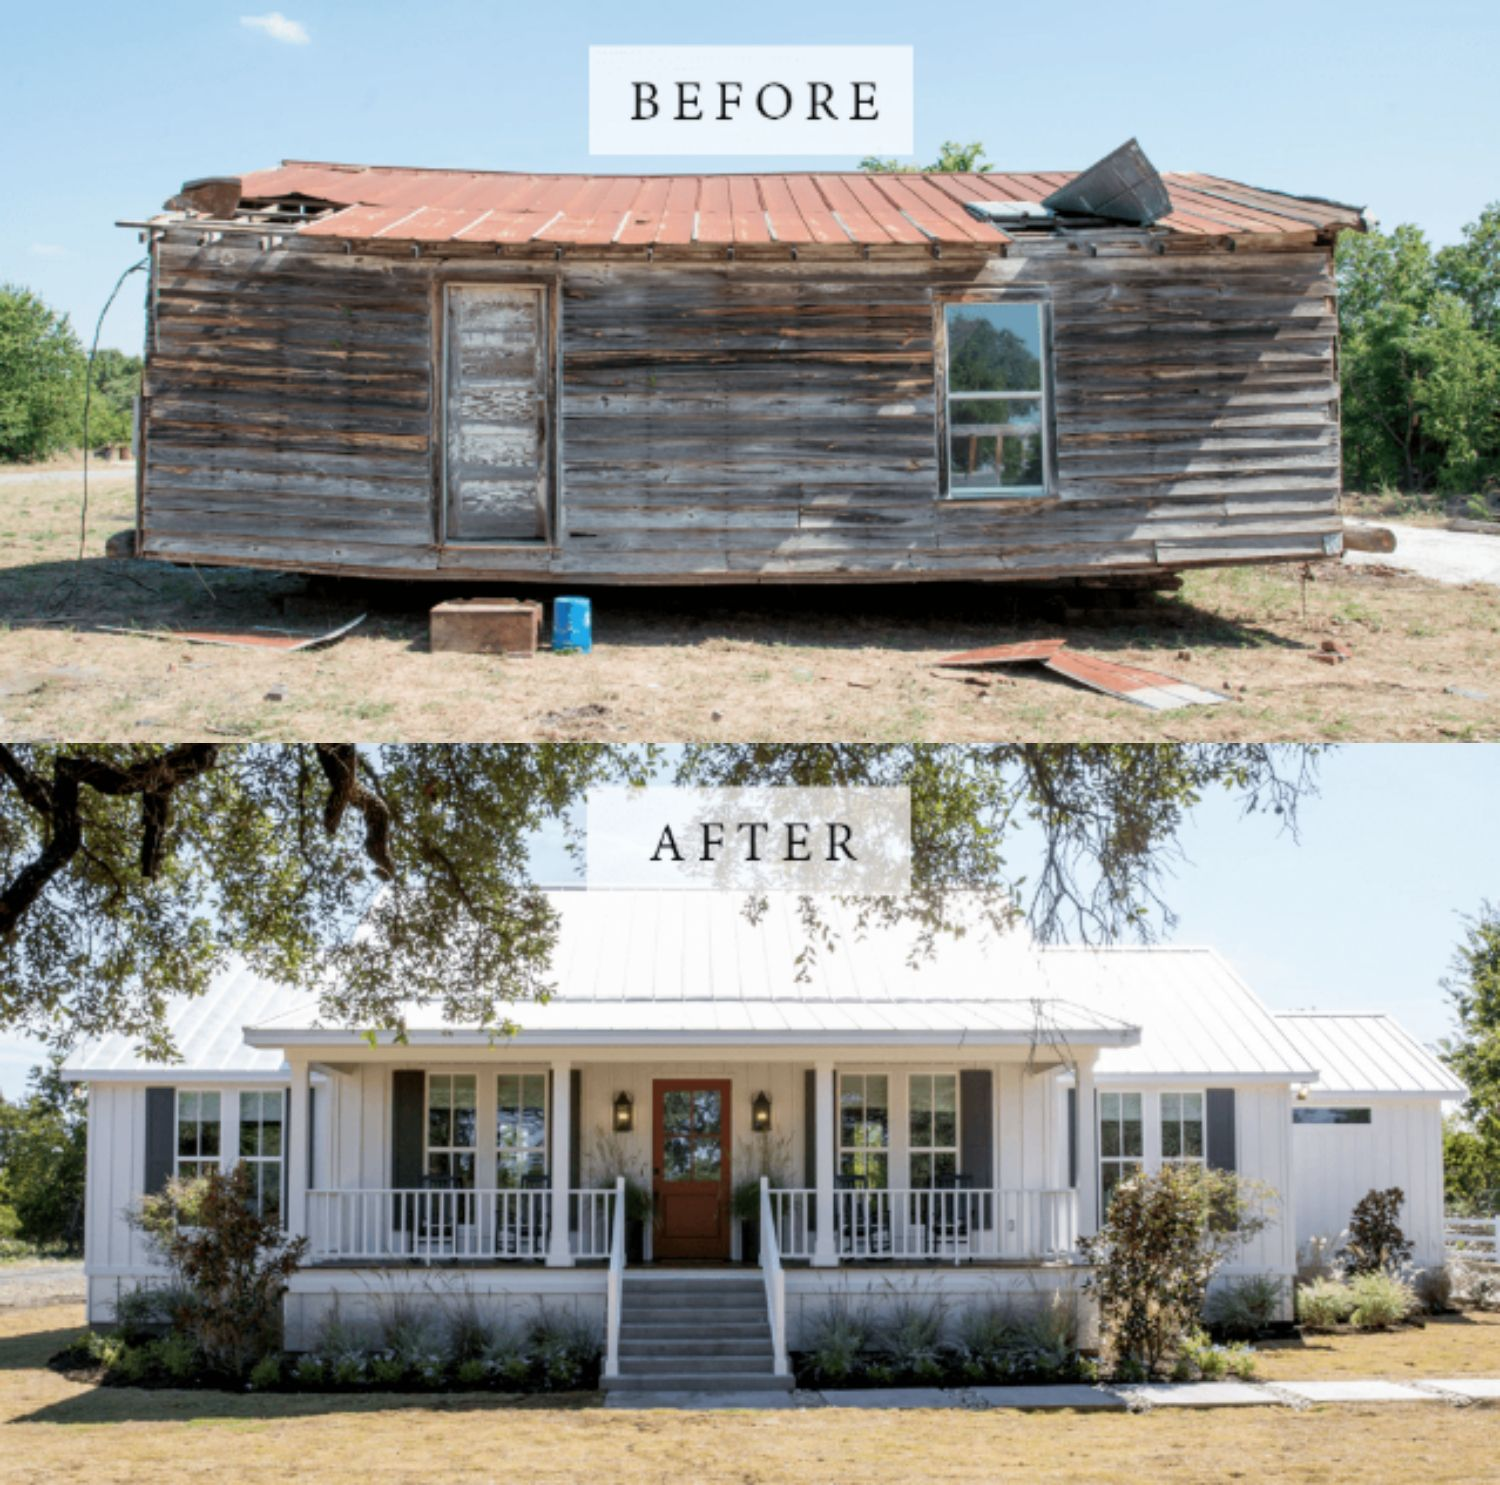 The Little Shack on the Prairie From Season 4 of Fixer Upper is For Sale